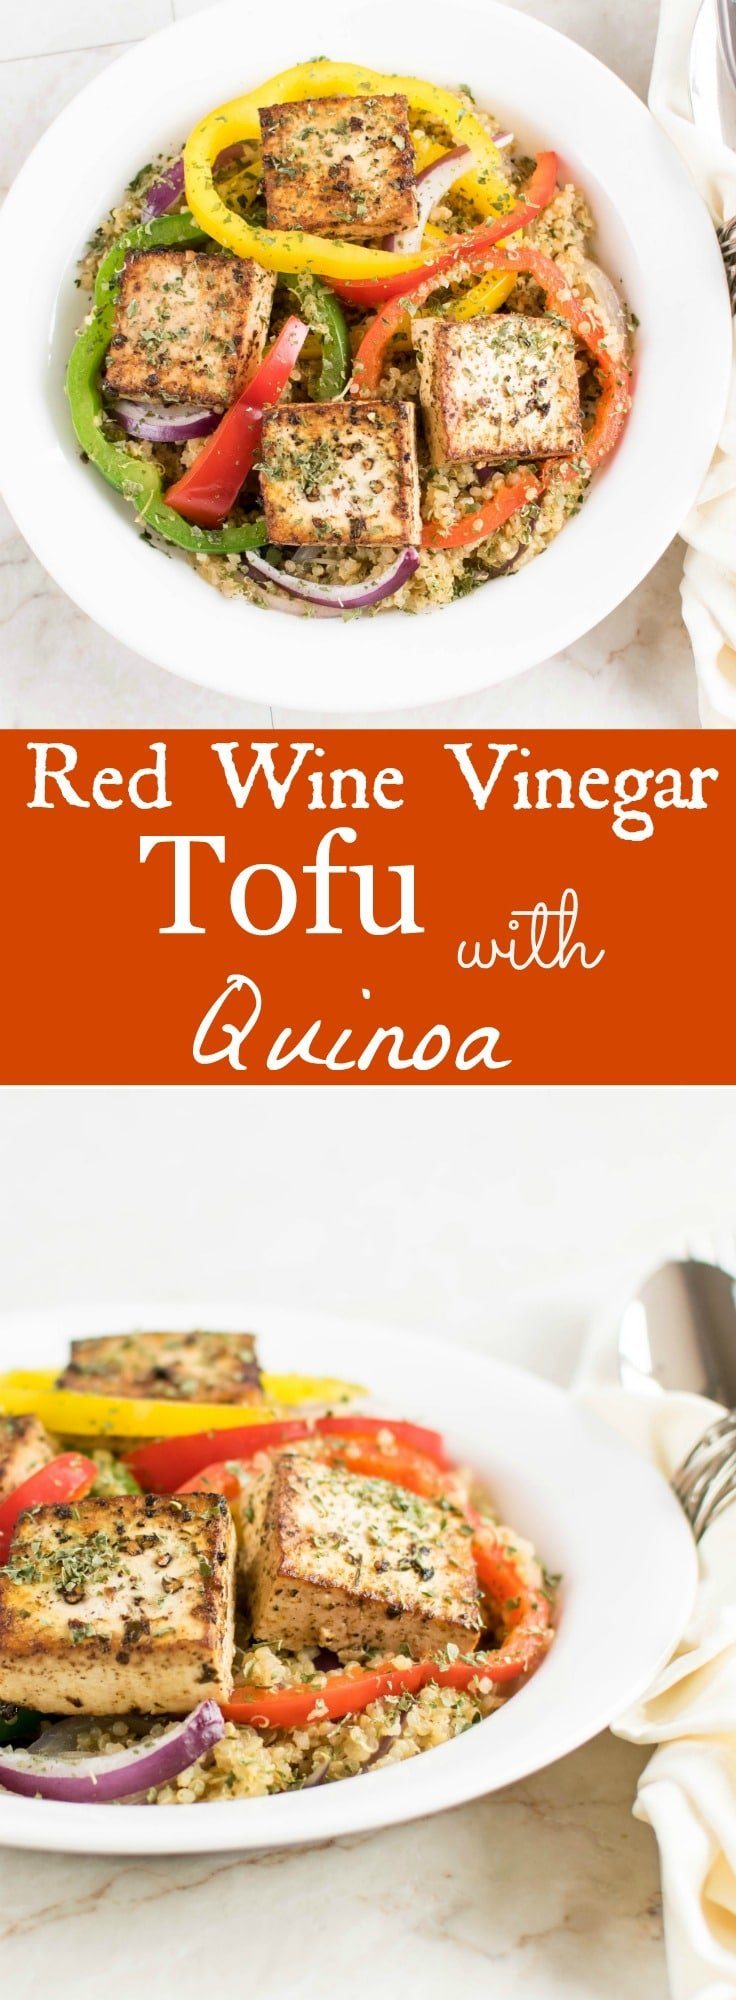 Red Wine Vinegar Tofu with Quinoa | 30 minutes vegan and gluten free dish flavored with Italian seasoning, herbs and cooked in red wine vinegar | familycuisine.net